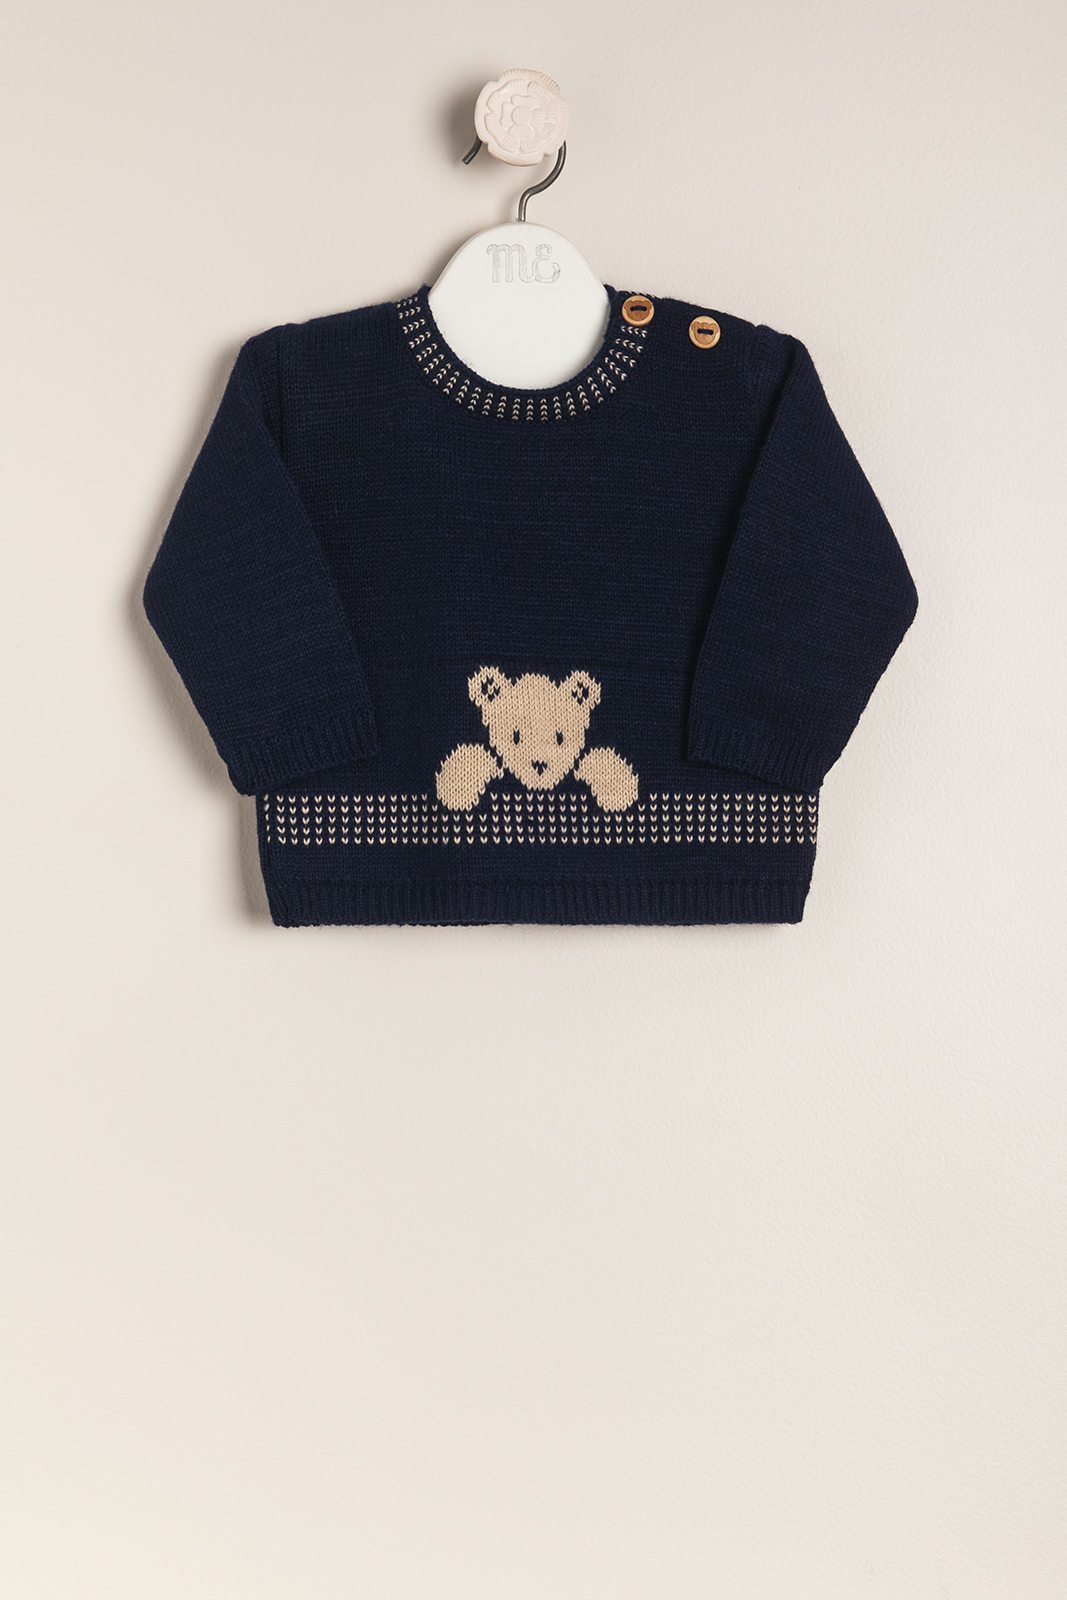 Sweater con osito baby teddy